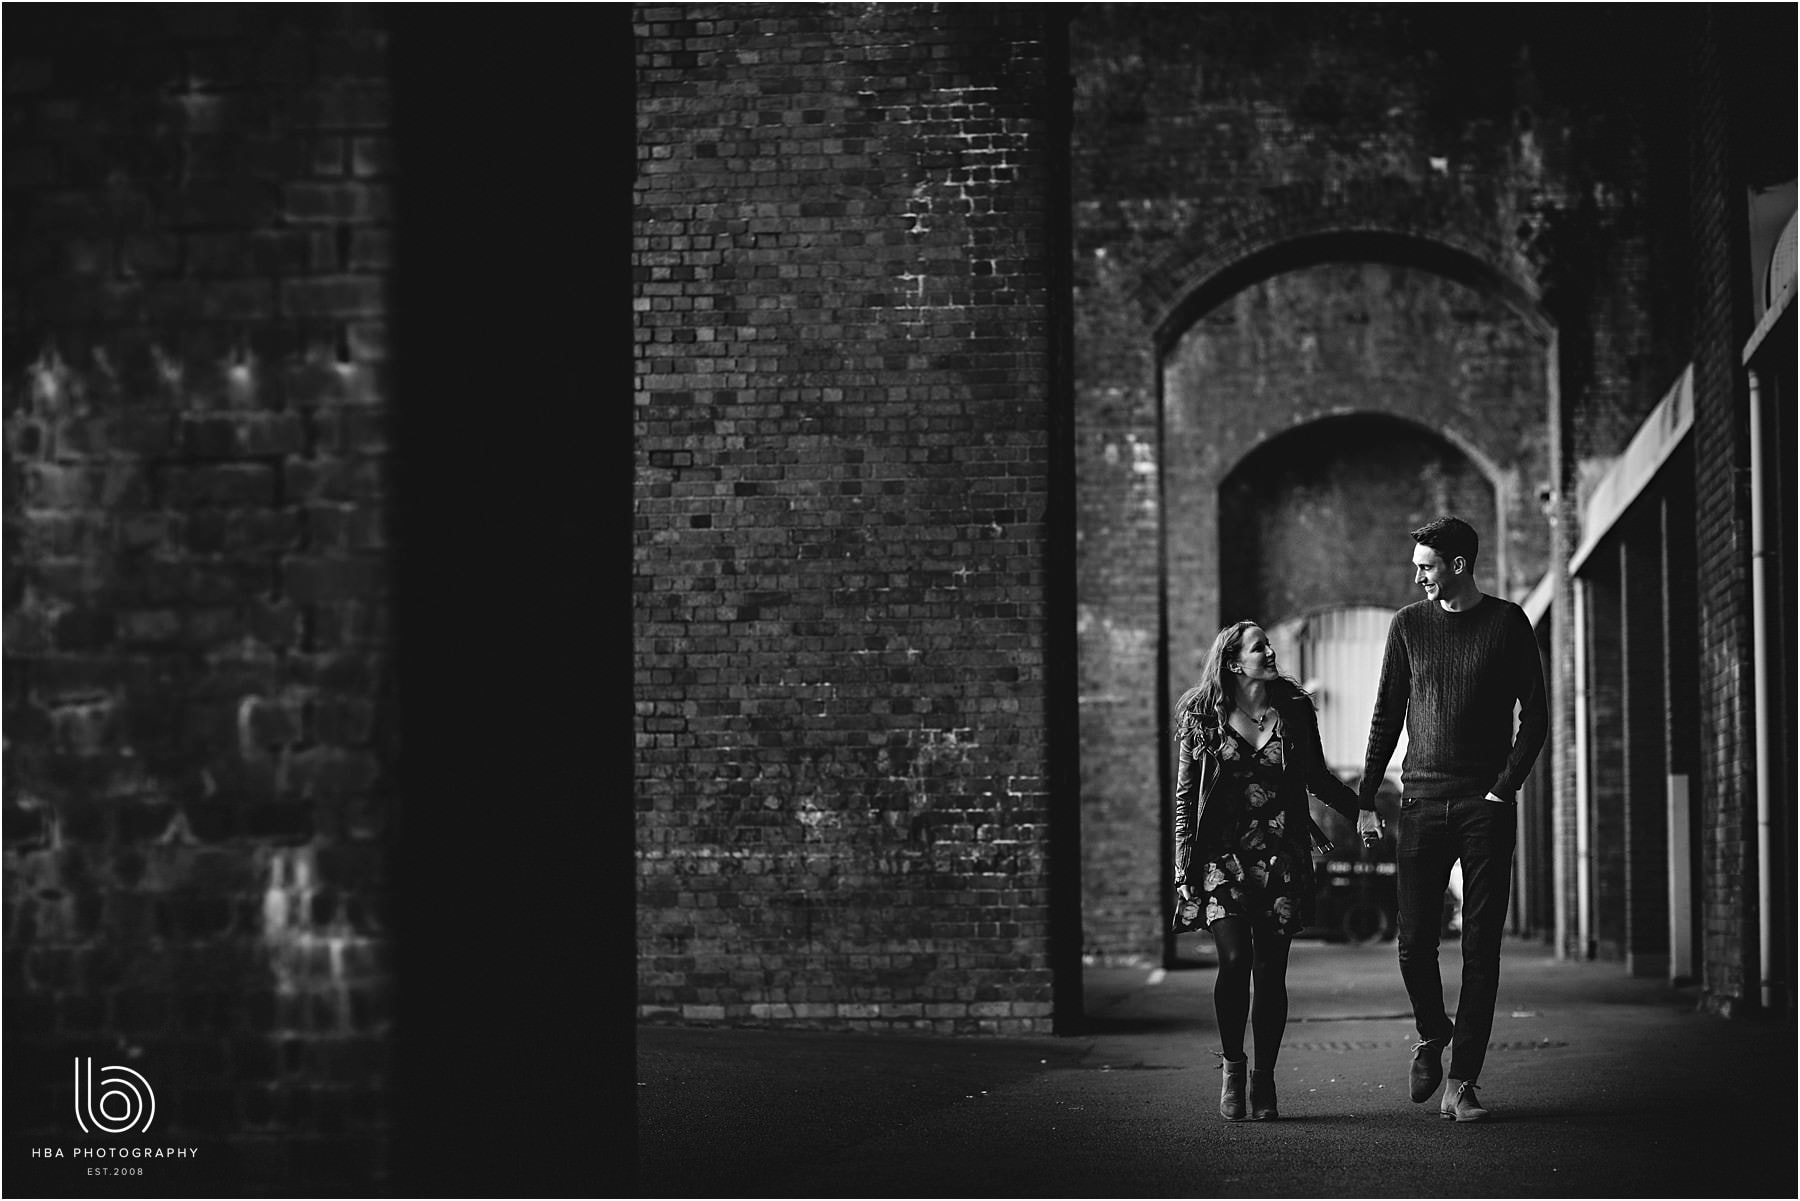 Black and white photo under the arches in the city